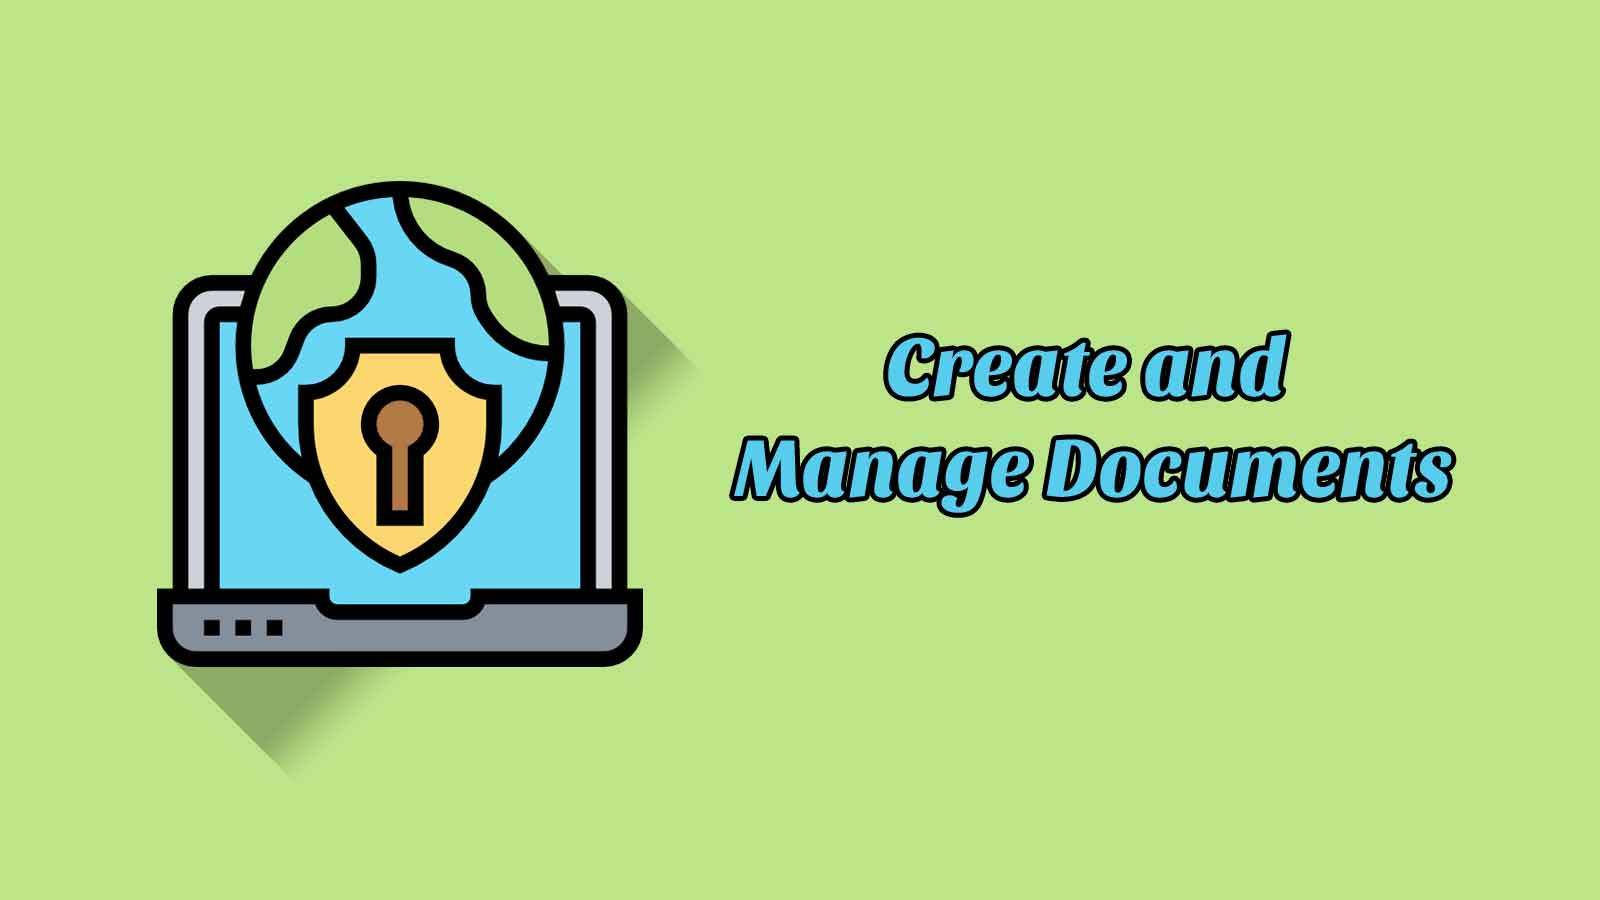 Create and Manage Documents - Word 2019 (APTI2)